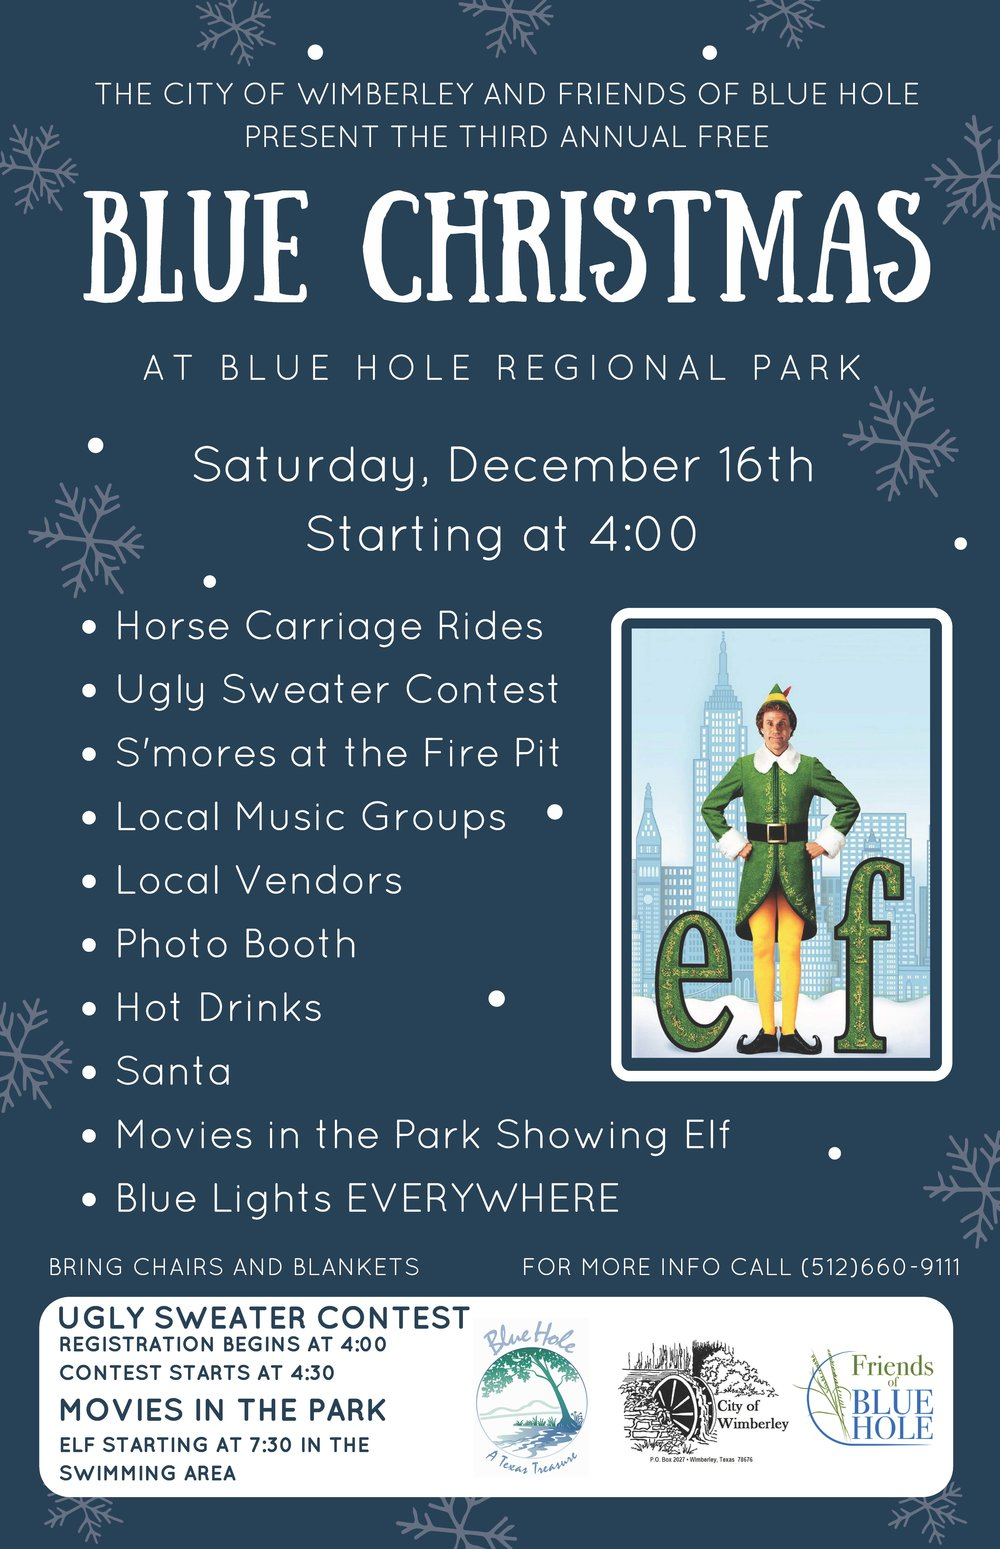 Blue Christmas Flyer 2017.jpg